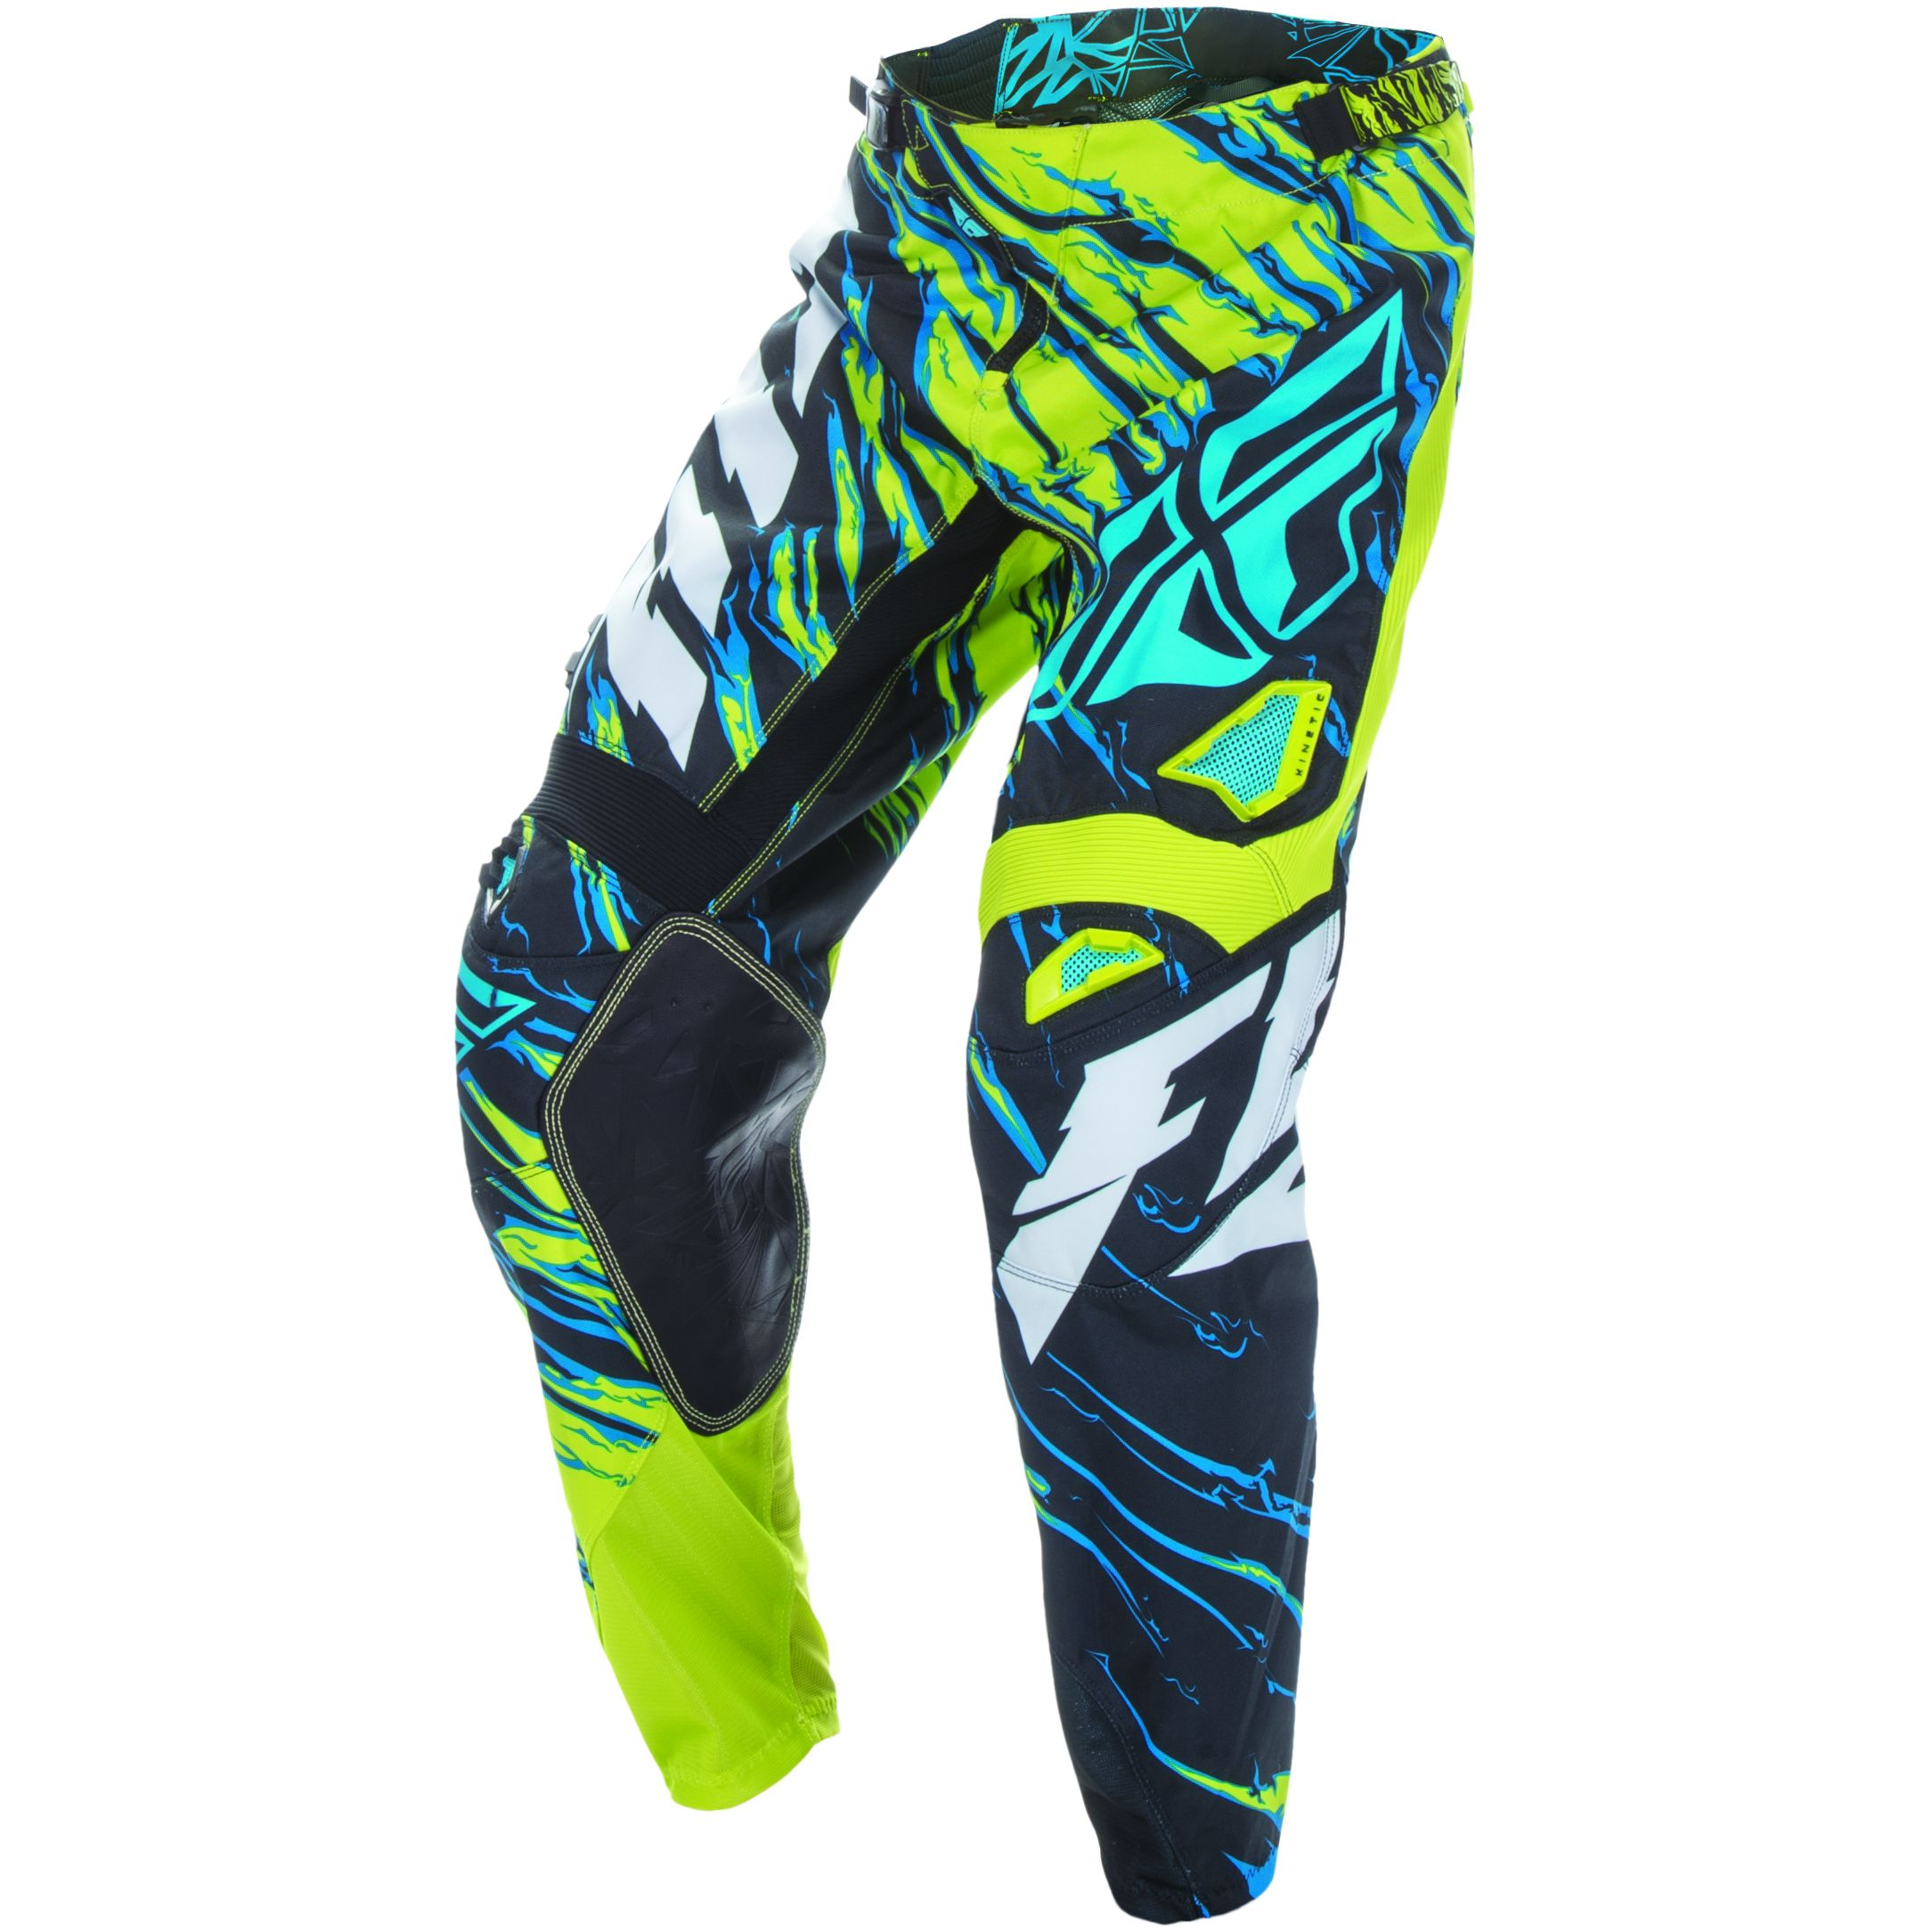 Pantalon cross FLY destockage KINETIC YOUTH RELAPSE - VERT BLEU -